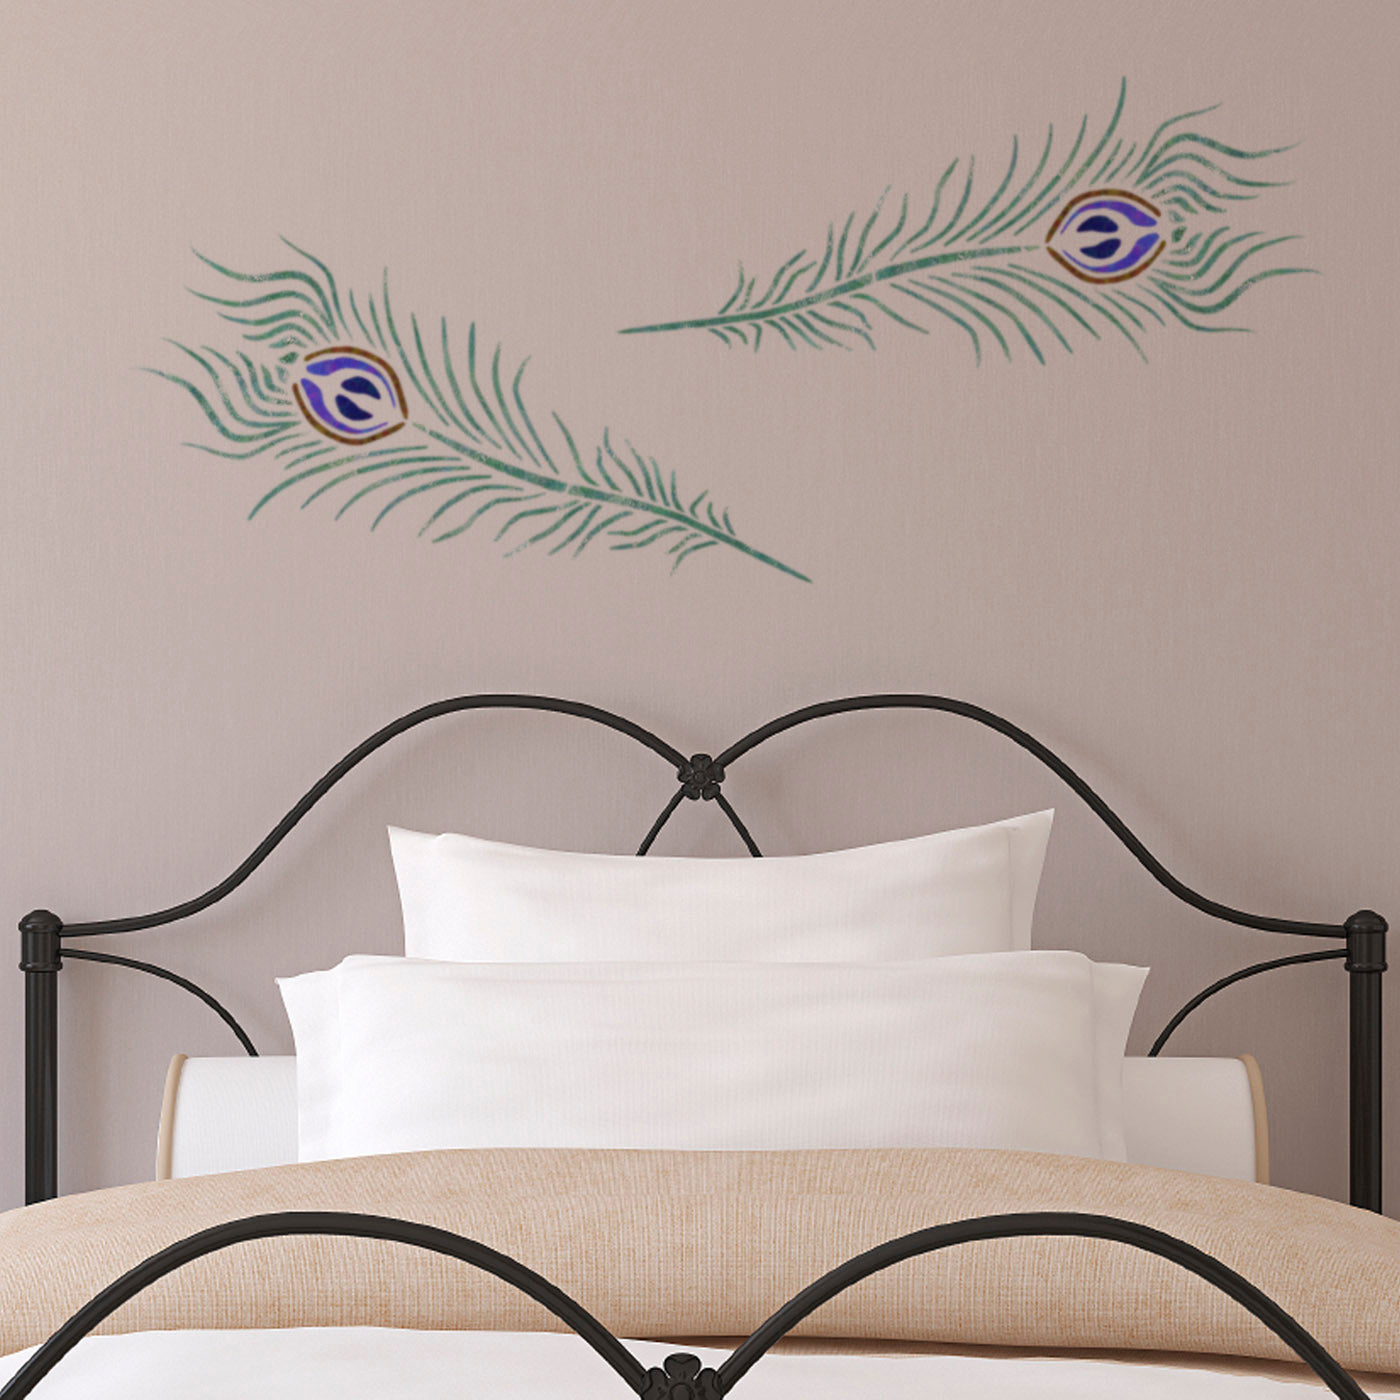 CraftStar Peacock Feather Wall Stencil